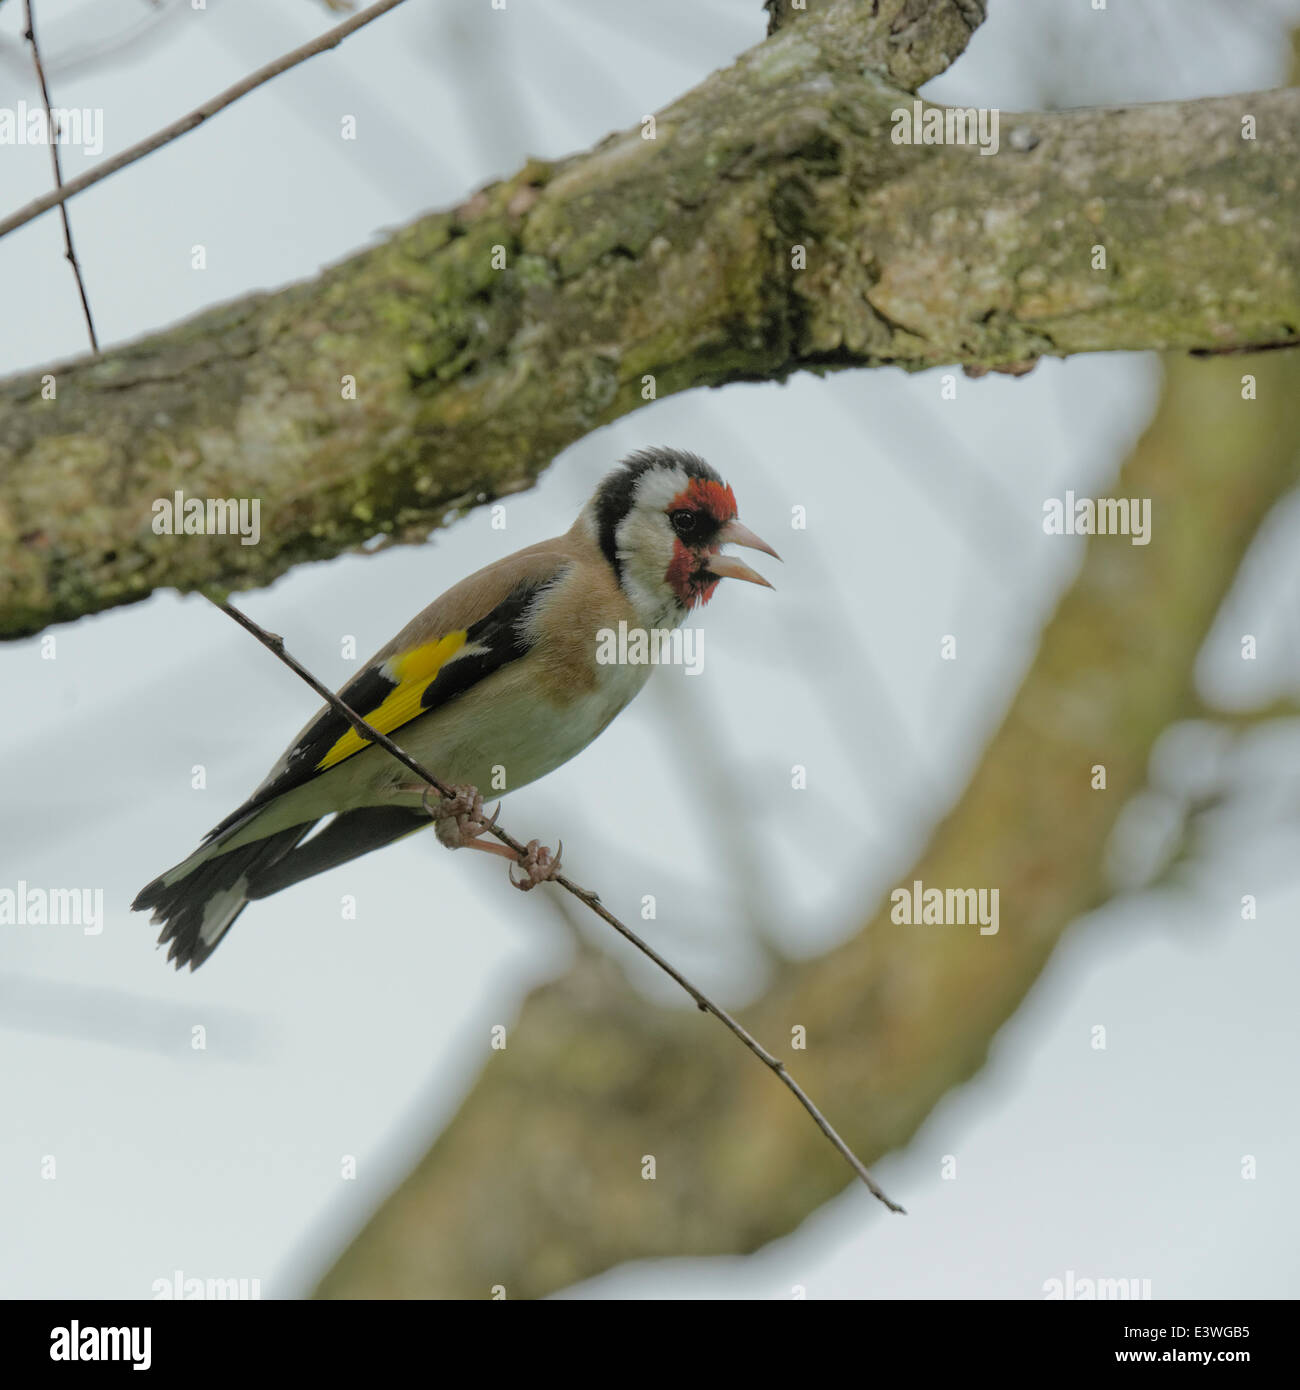 British Garden Birds : A solitary perching goldfinch hoping to find a place on a nyger seed feeder - Stock Image